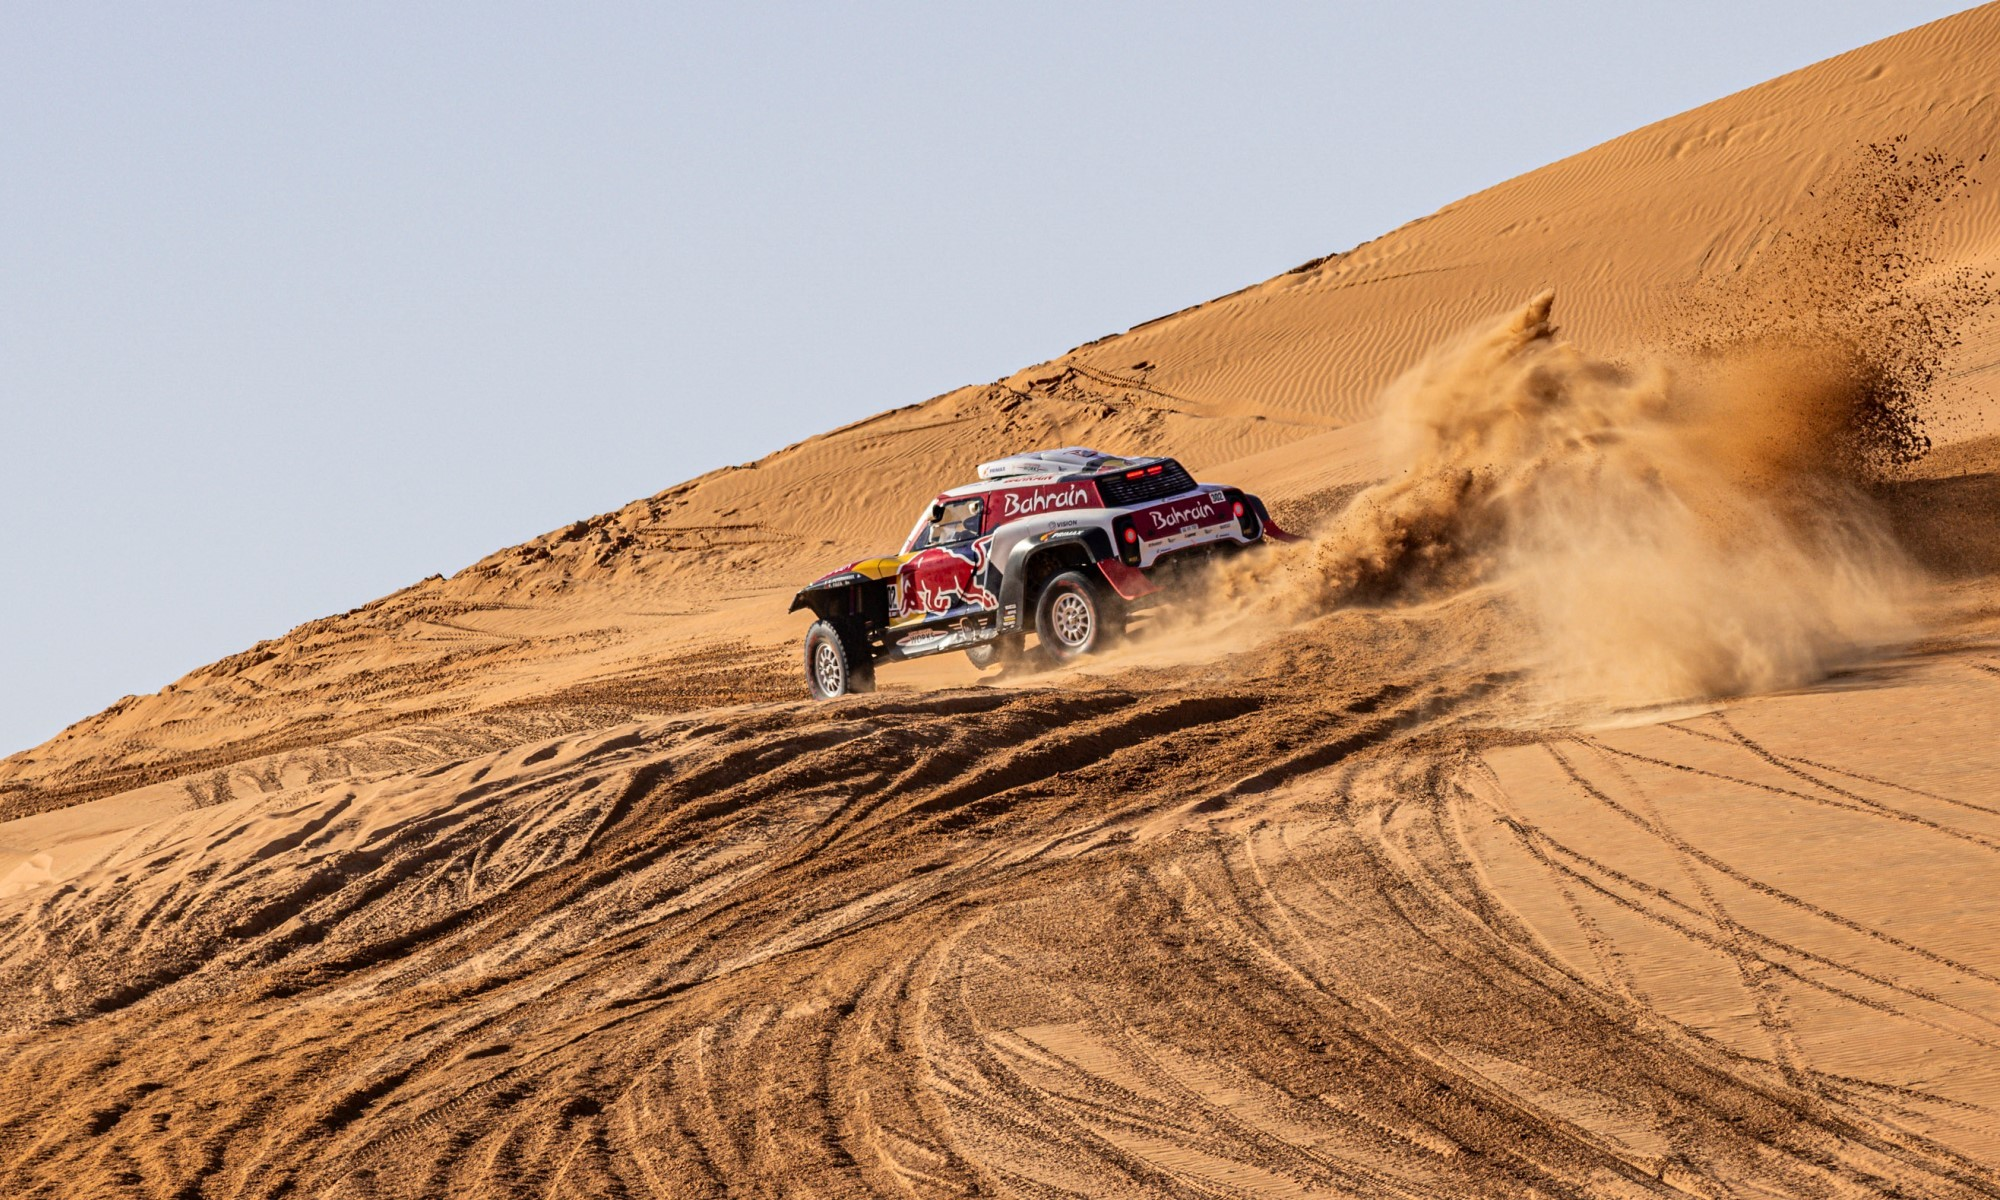 Stephane Peterhansel was the man to beat on 2020 Dakar stage 11